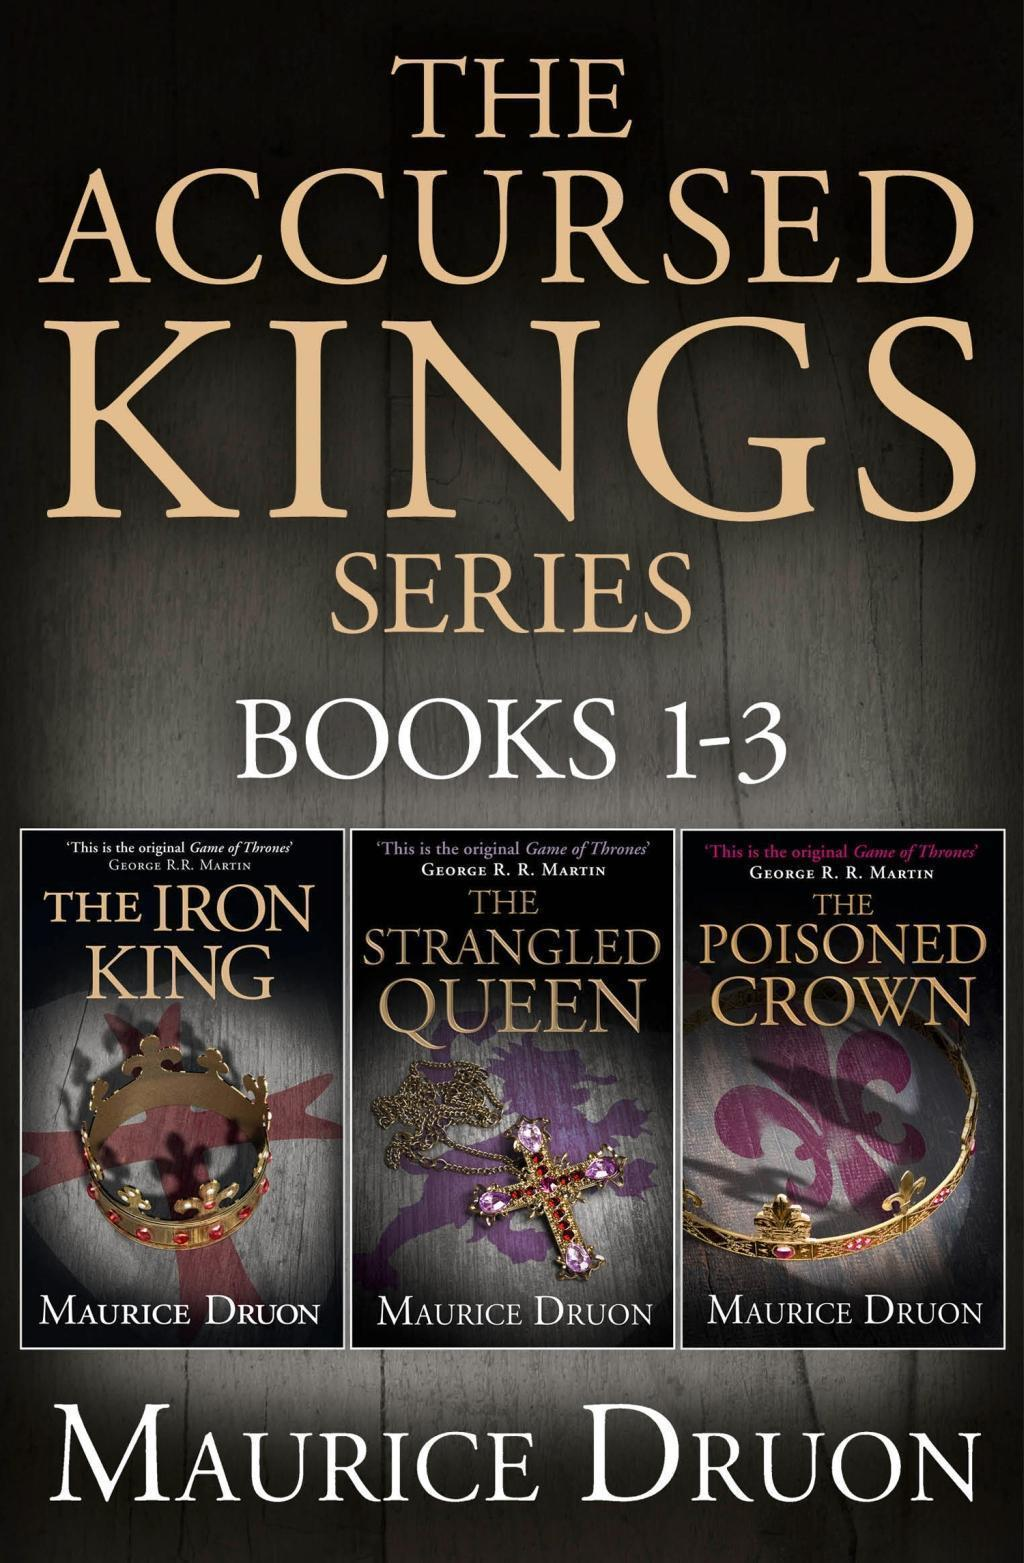 The Accursed Kings Series Books 1-3: The Iron King, The Strangled Queen, The Poisoned Crown